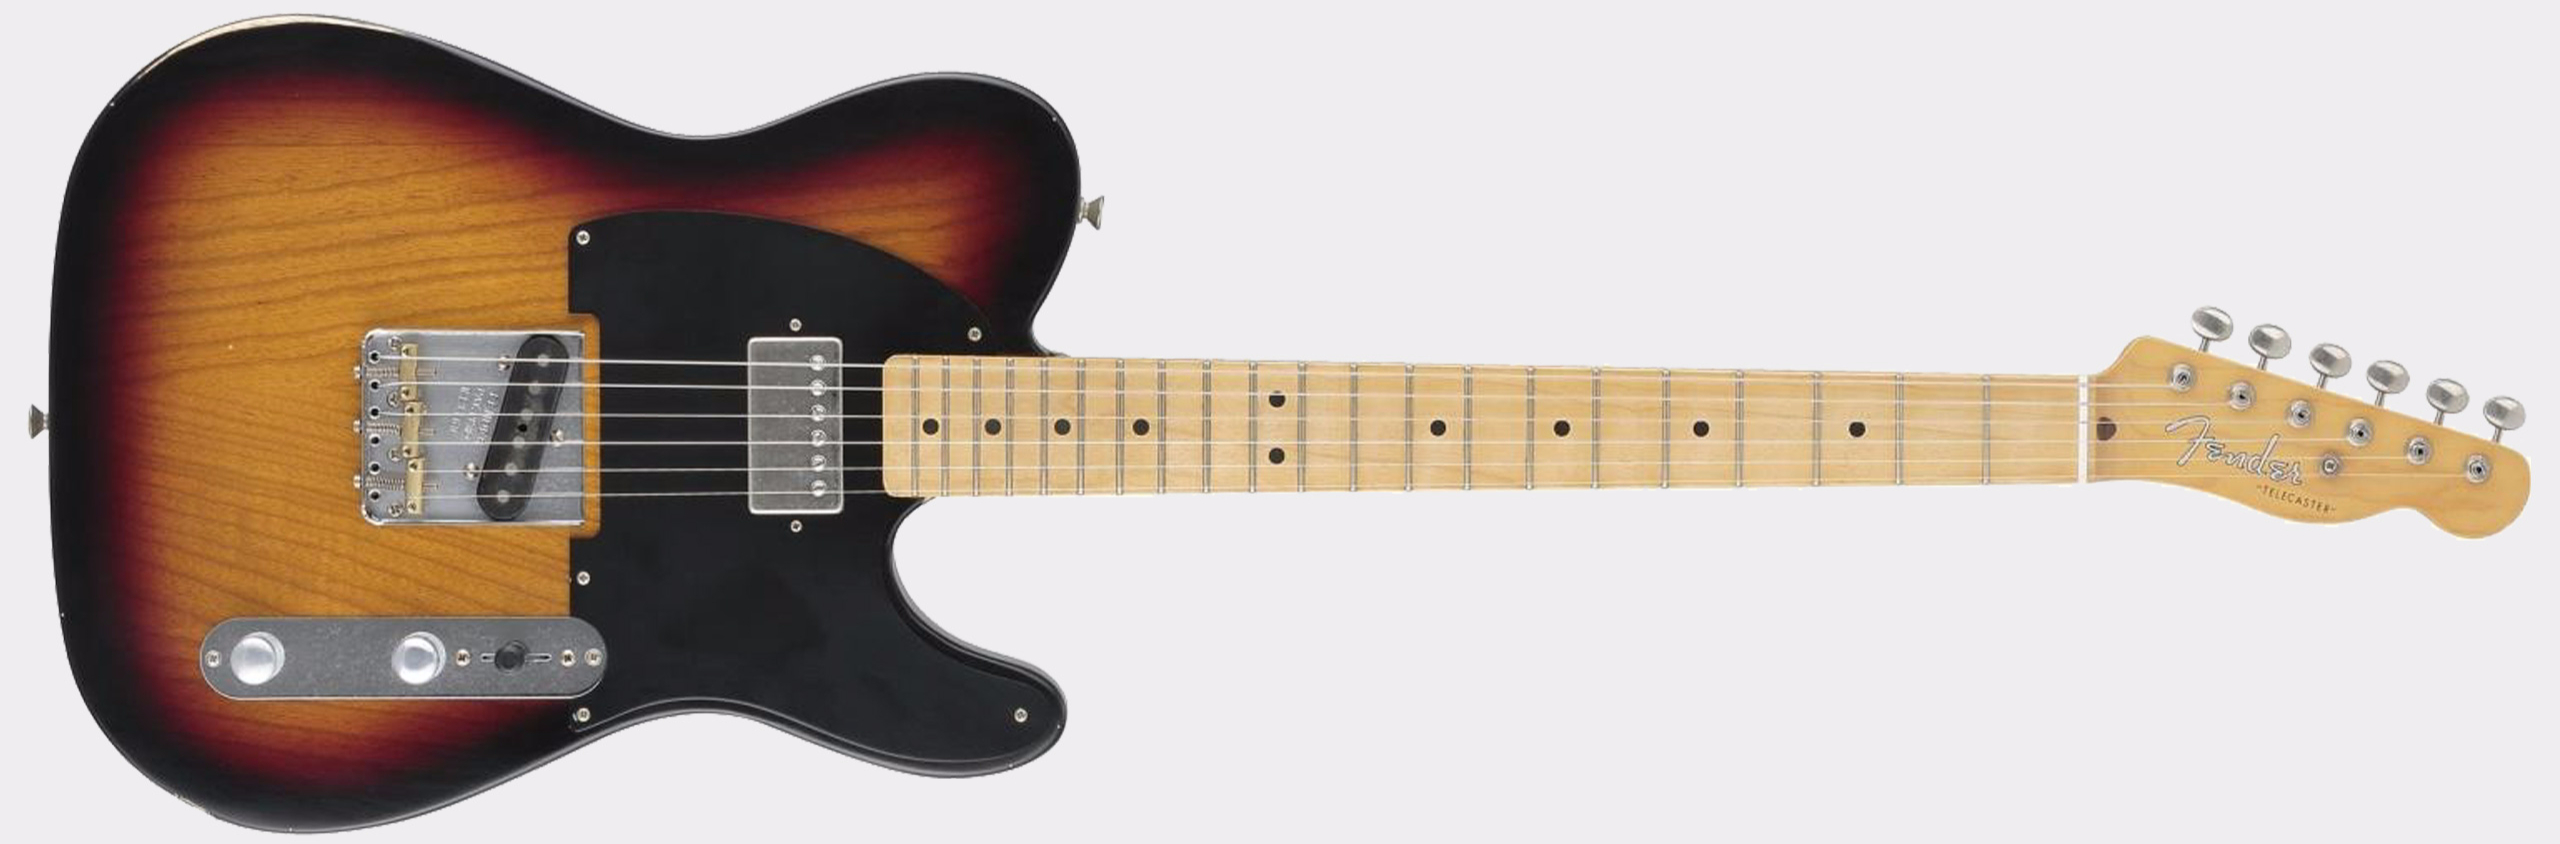 FENDER Special Edition Road Worn Hot Rod Tele MN 3-Tone Sunburst